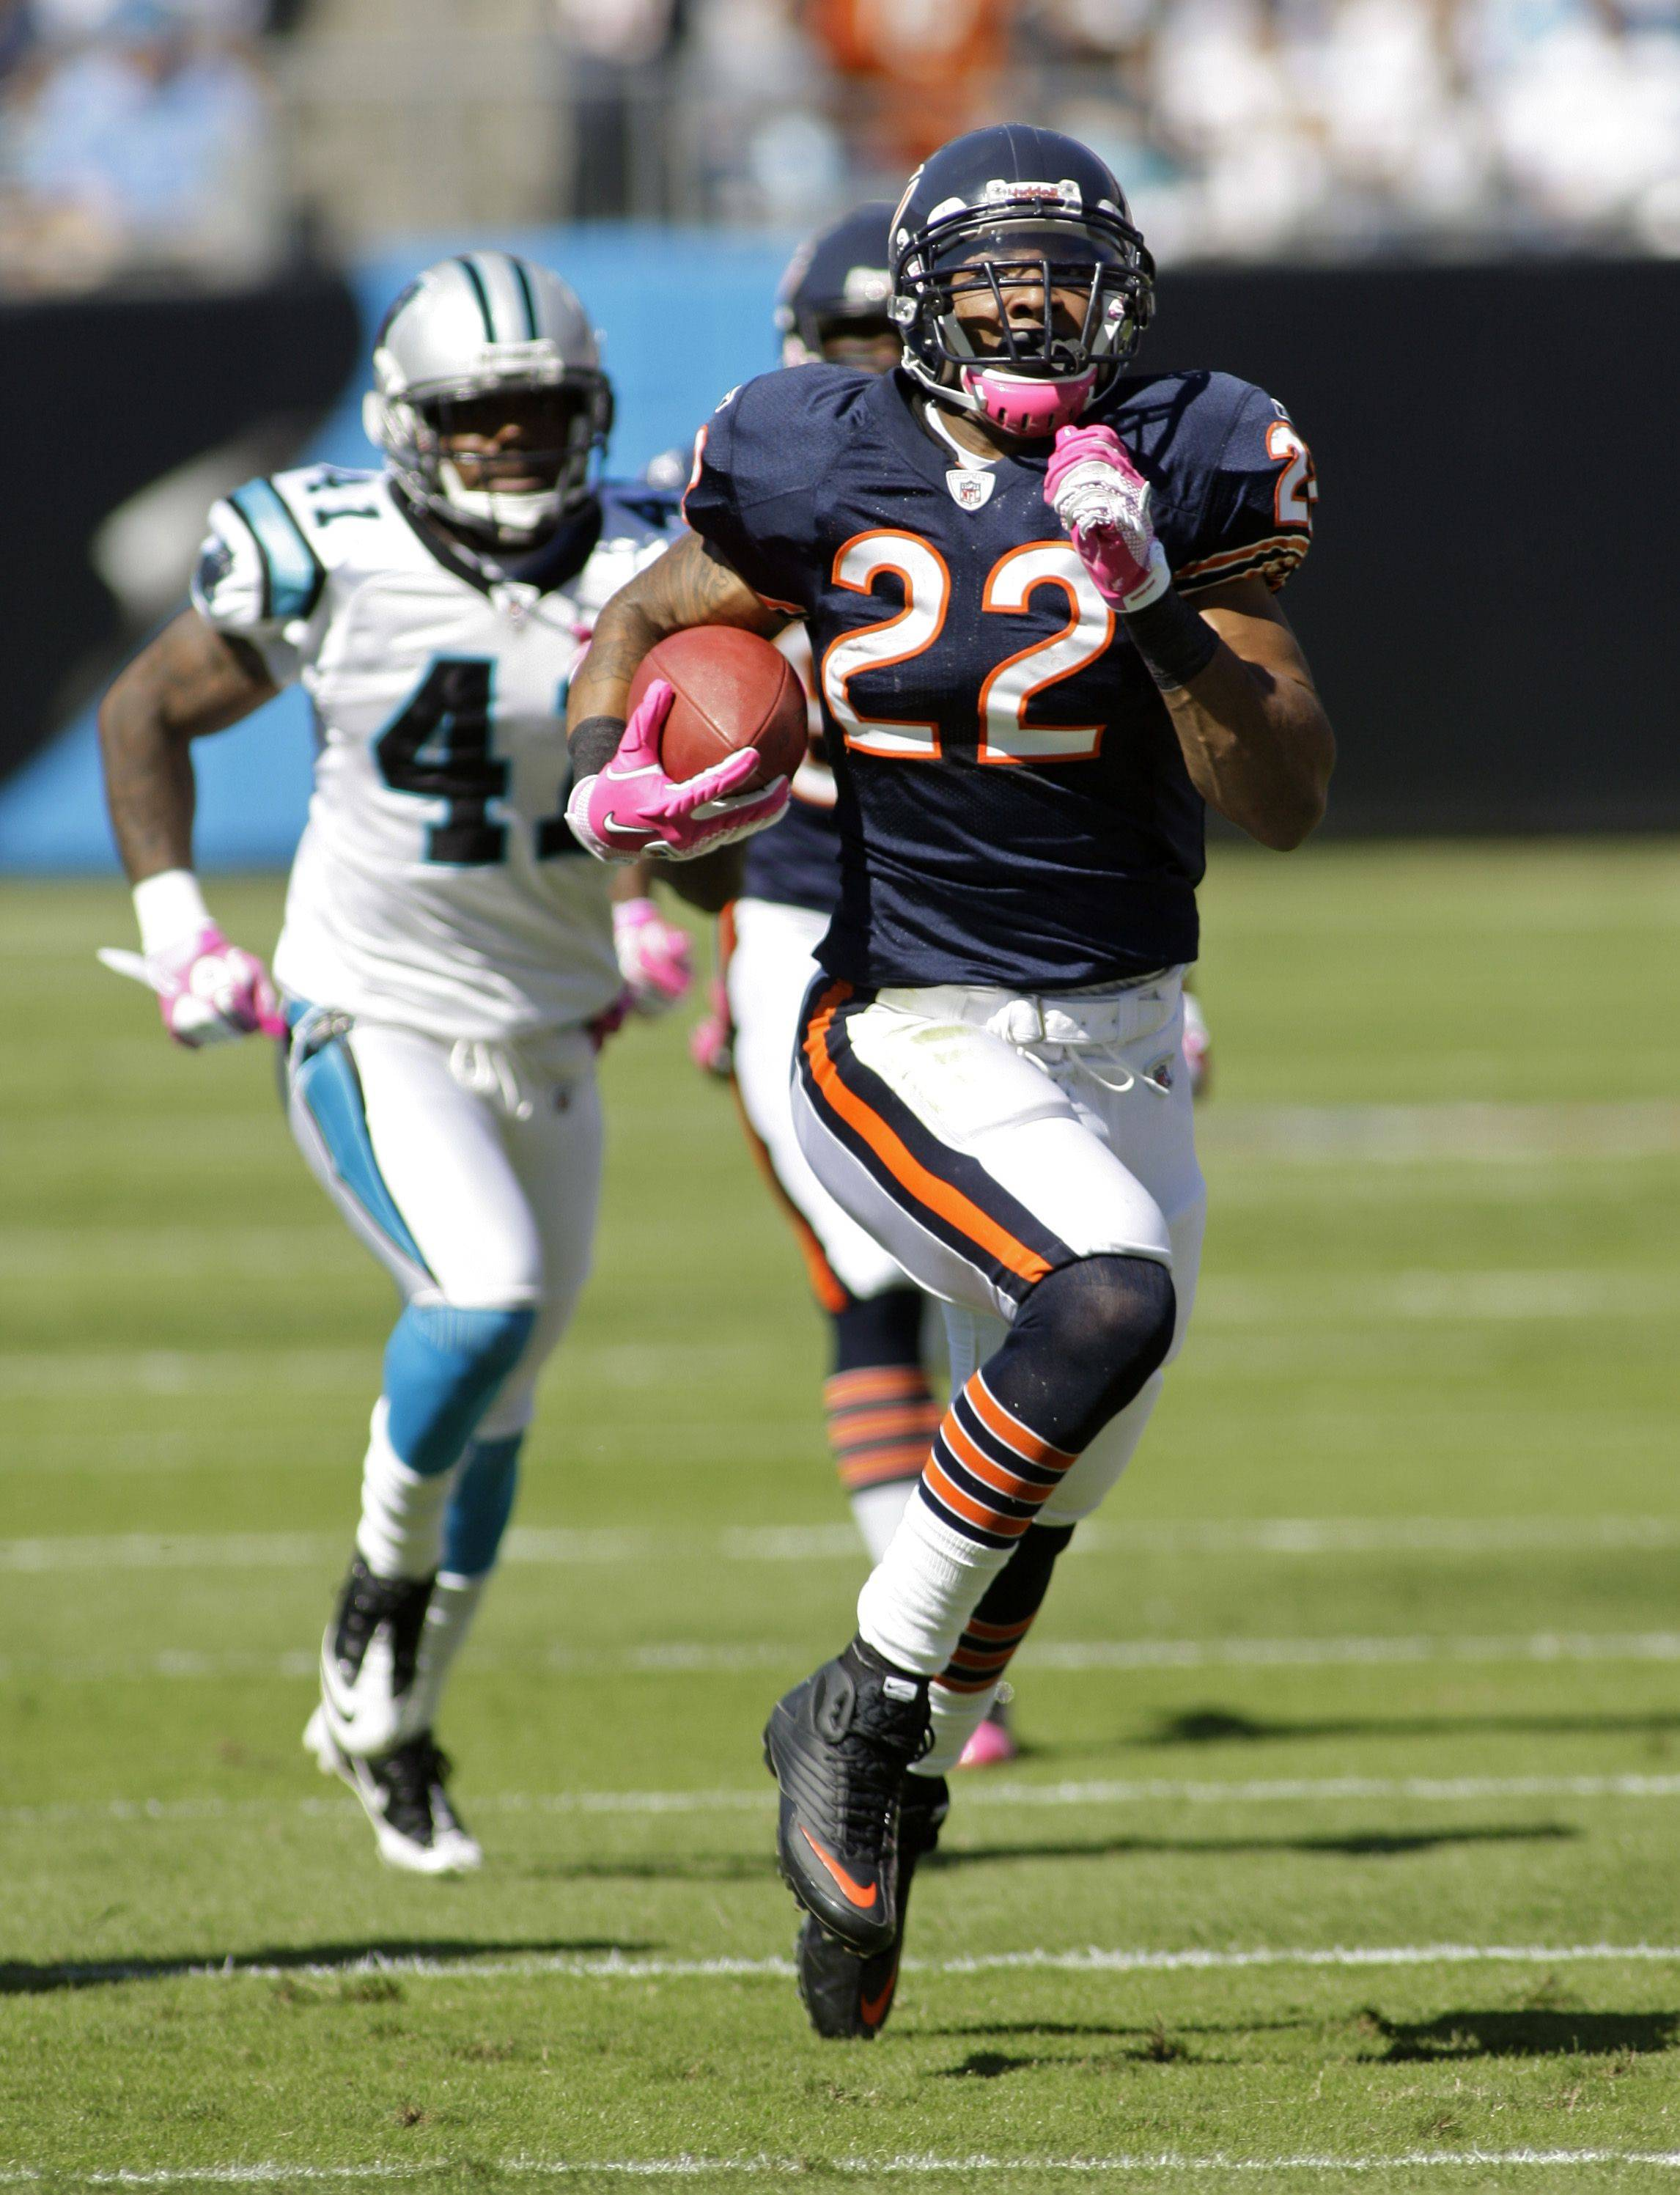 Matt Forte runs for a touchdown as Carolina Panthers' Captain Munnerlyn chases in the first half.